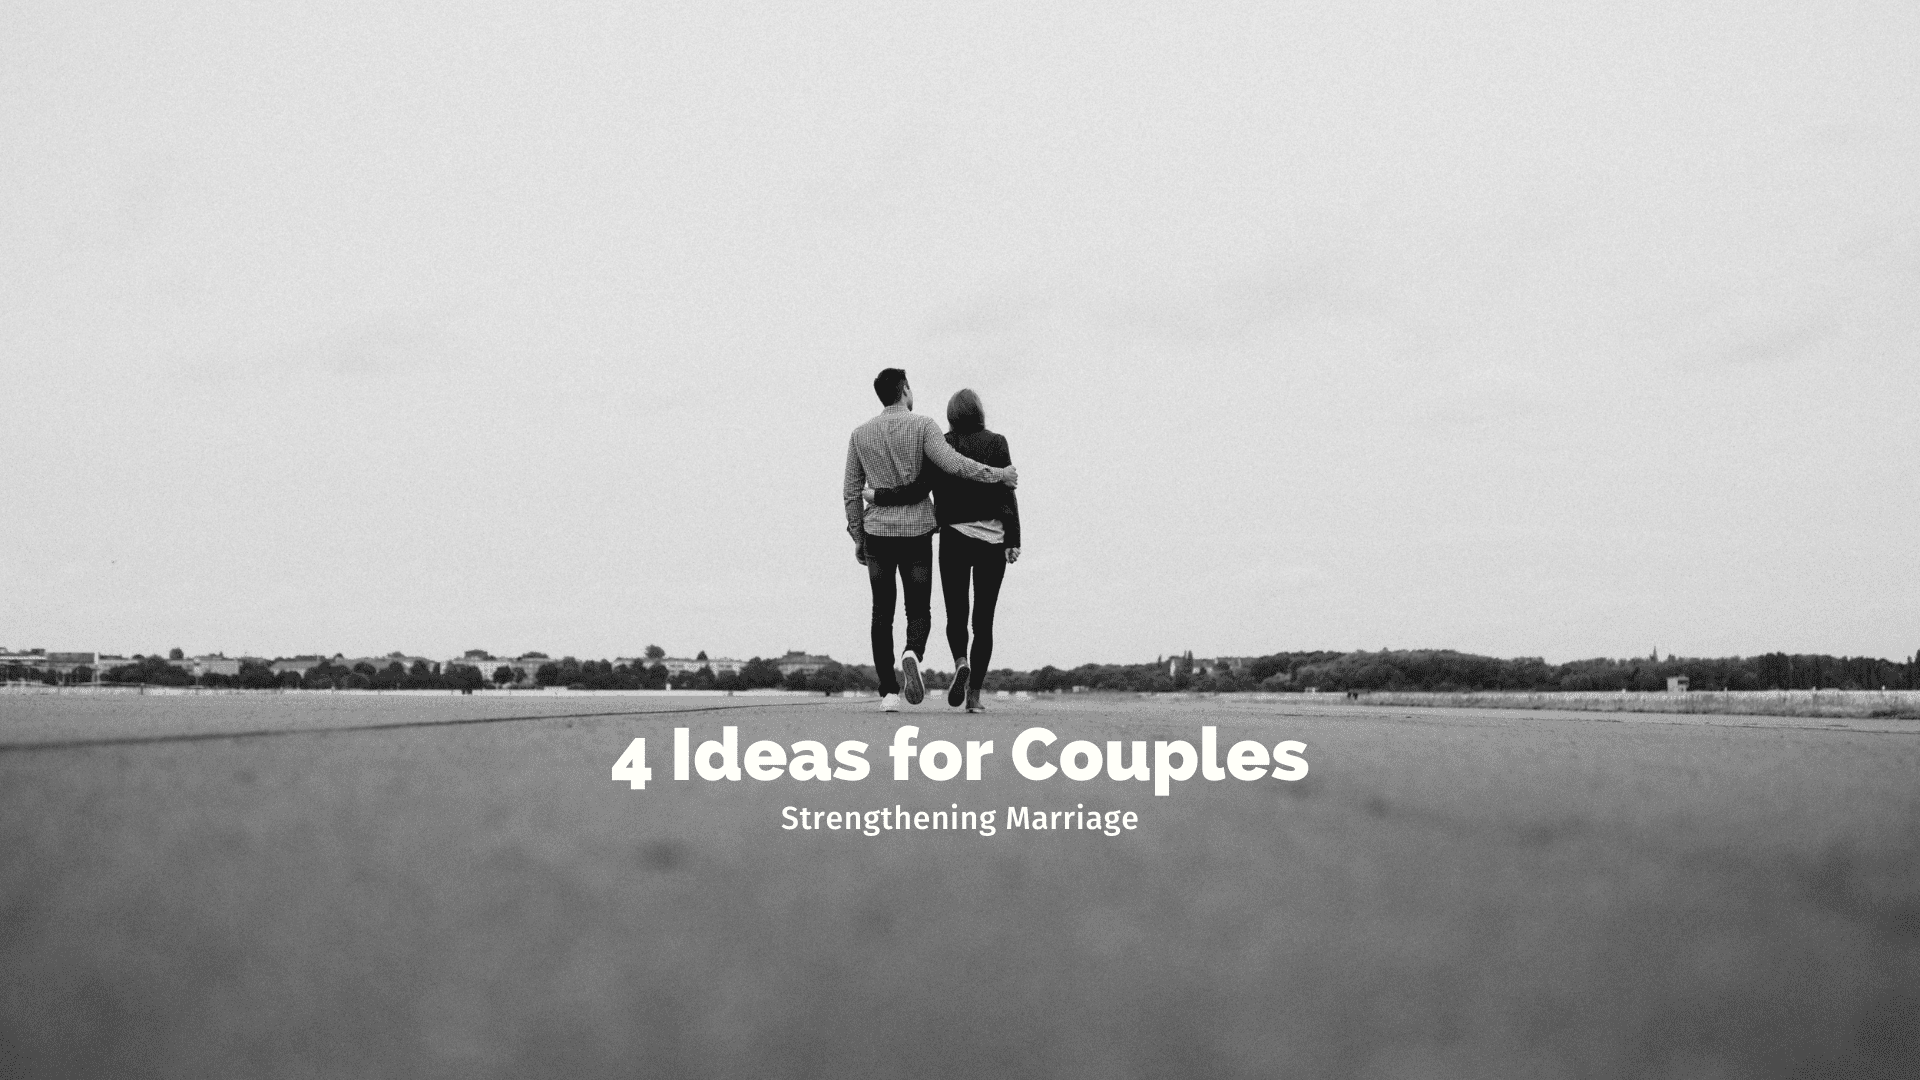 4 Ideas for Couples